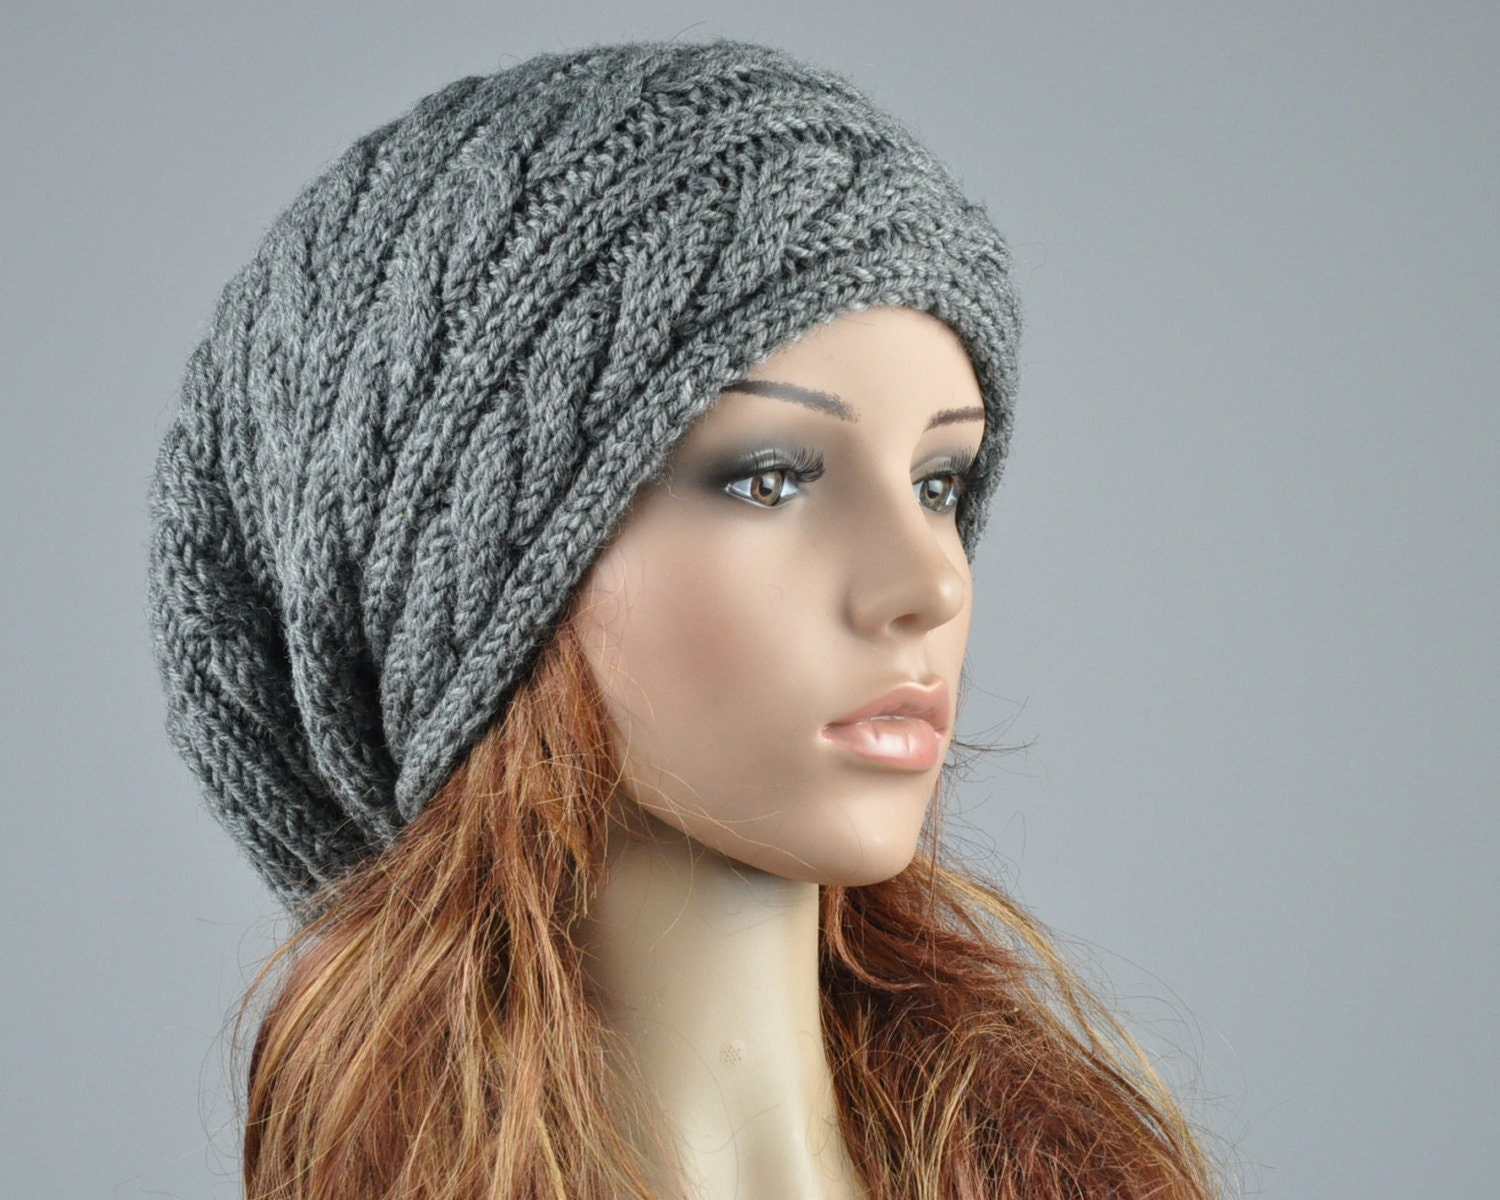 Mens Slouchy Beanie Knitting Pattern : Hand knit hat woman men unisex Charcoal hat slouchy hat cable